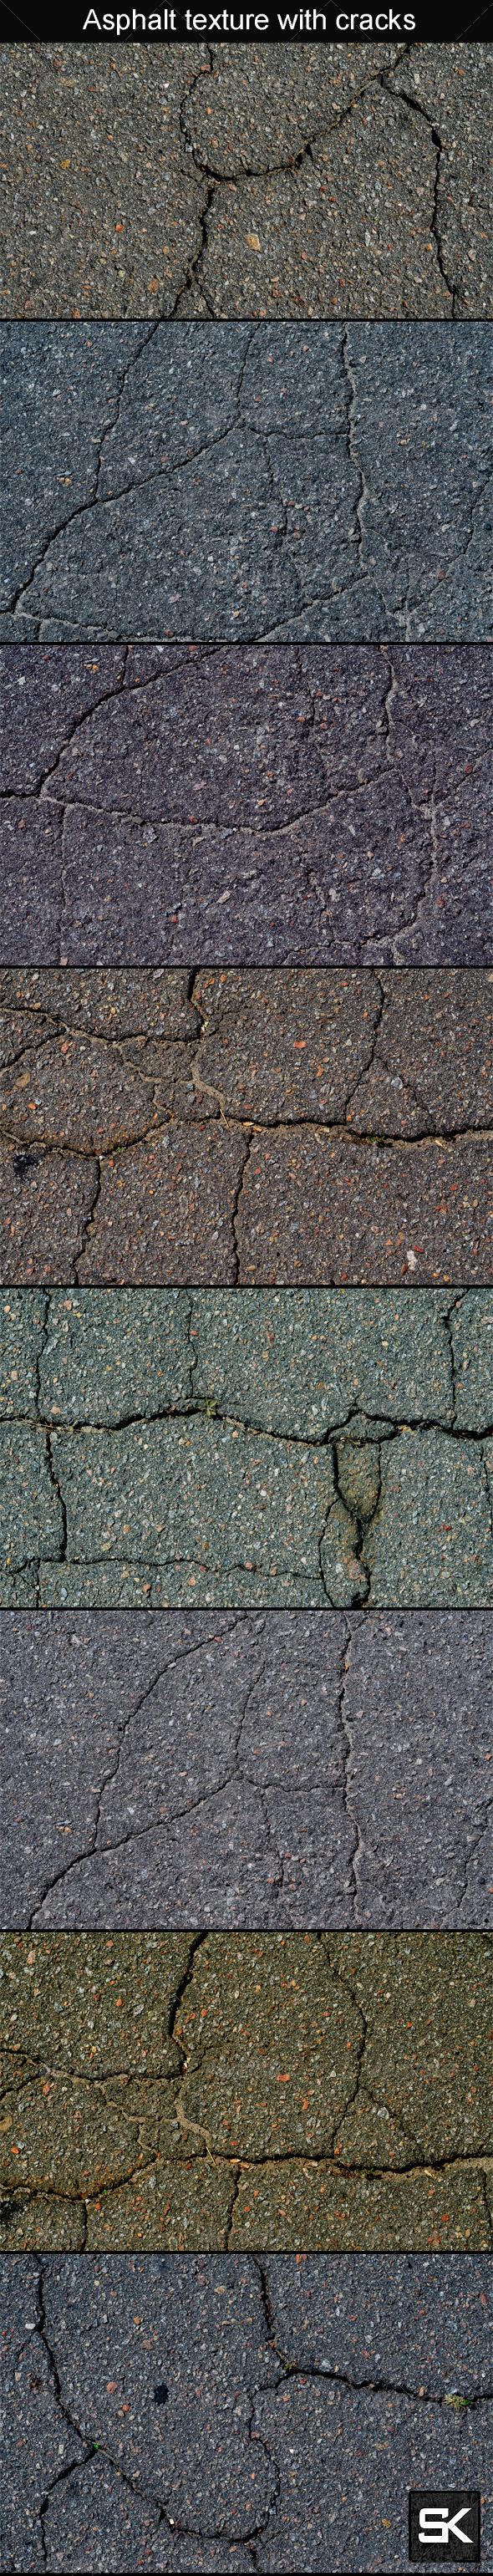 GraphicRiver Asphalt Texture With Cracks 8020110